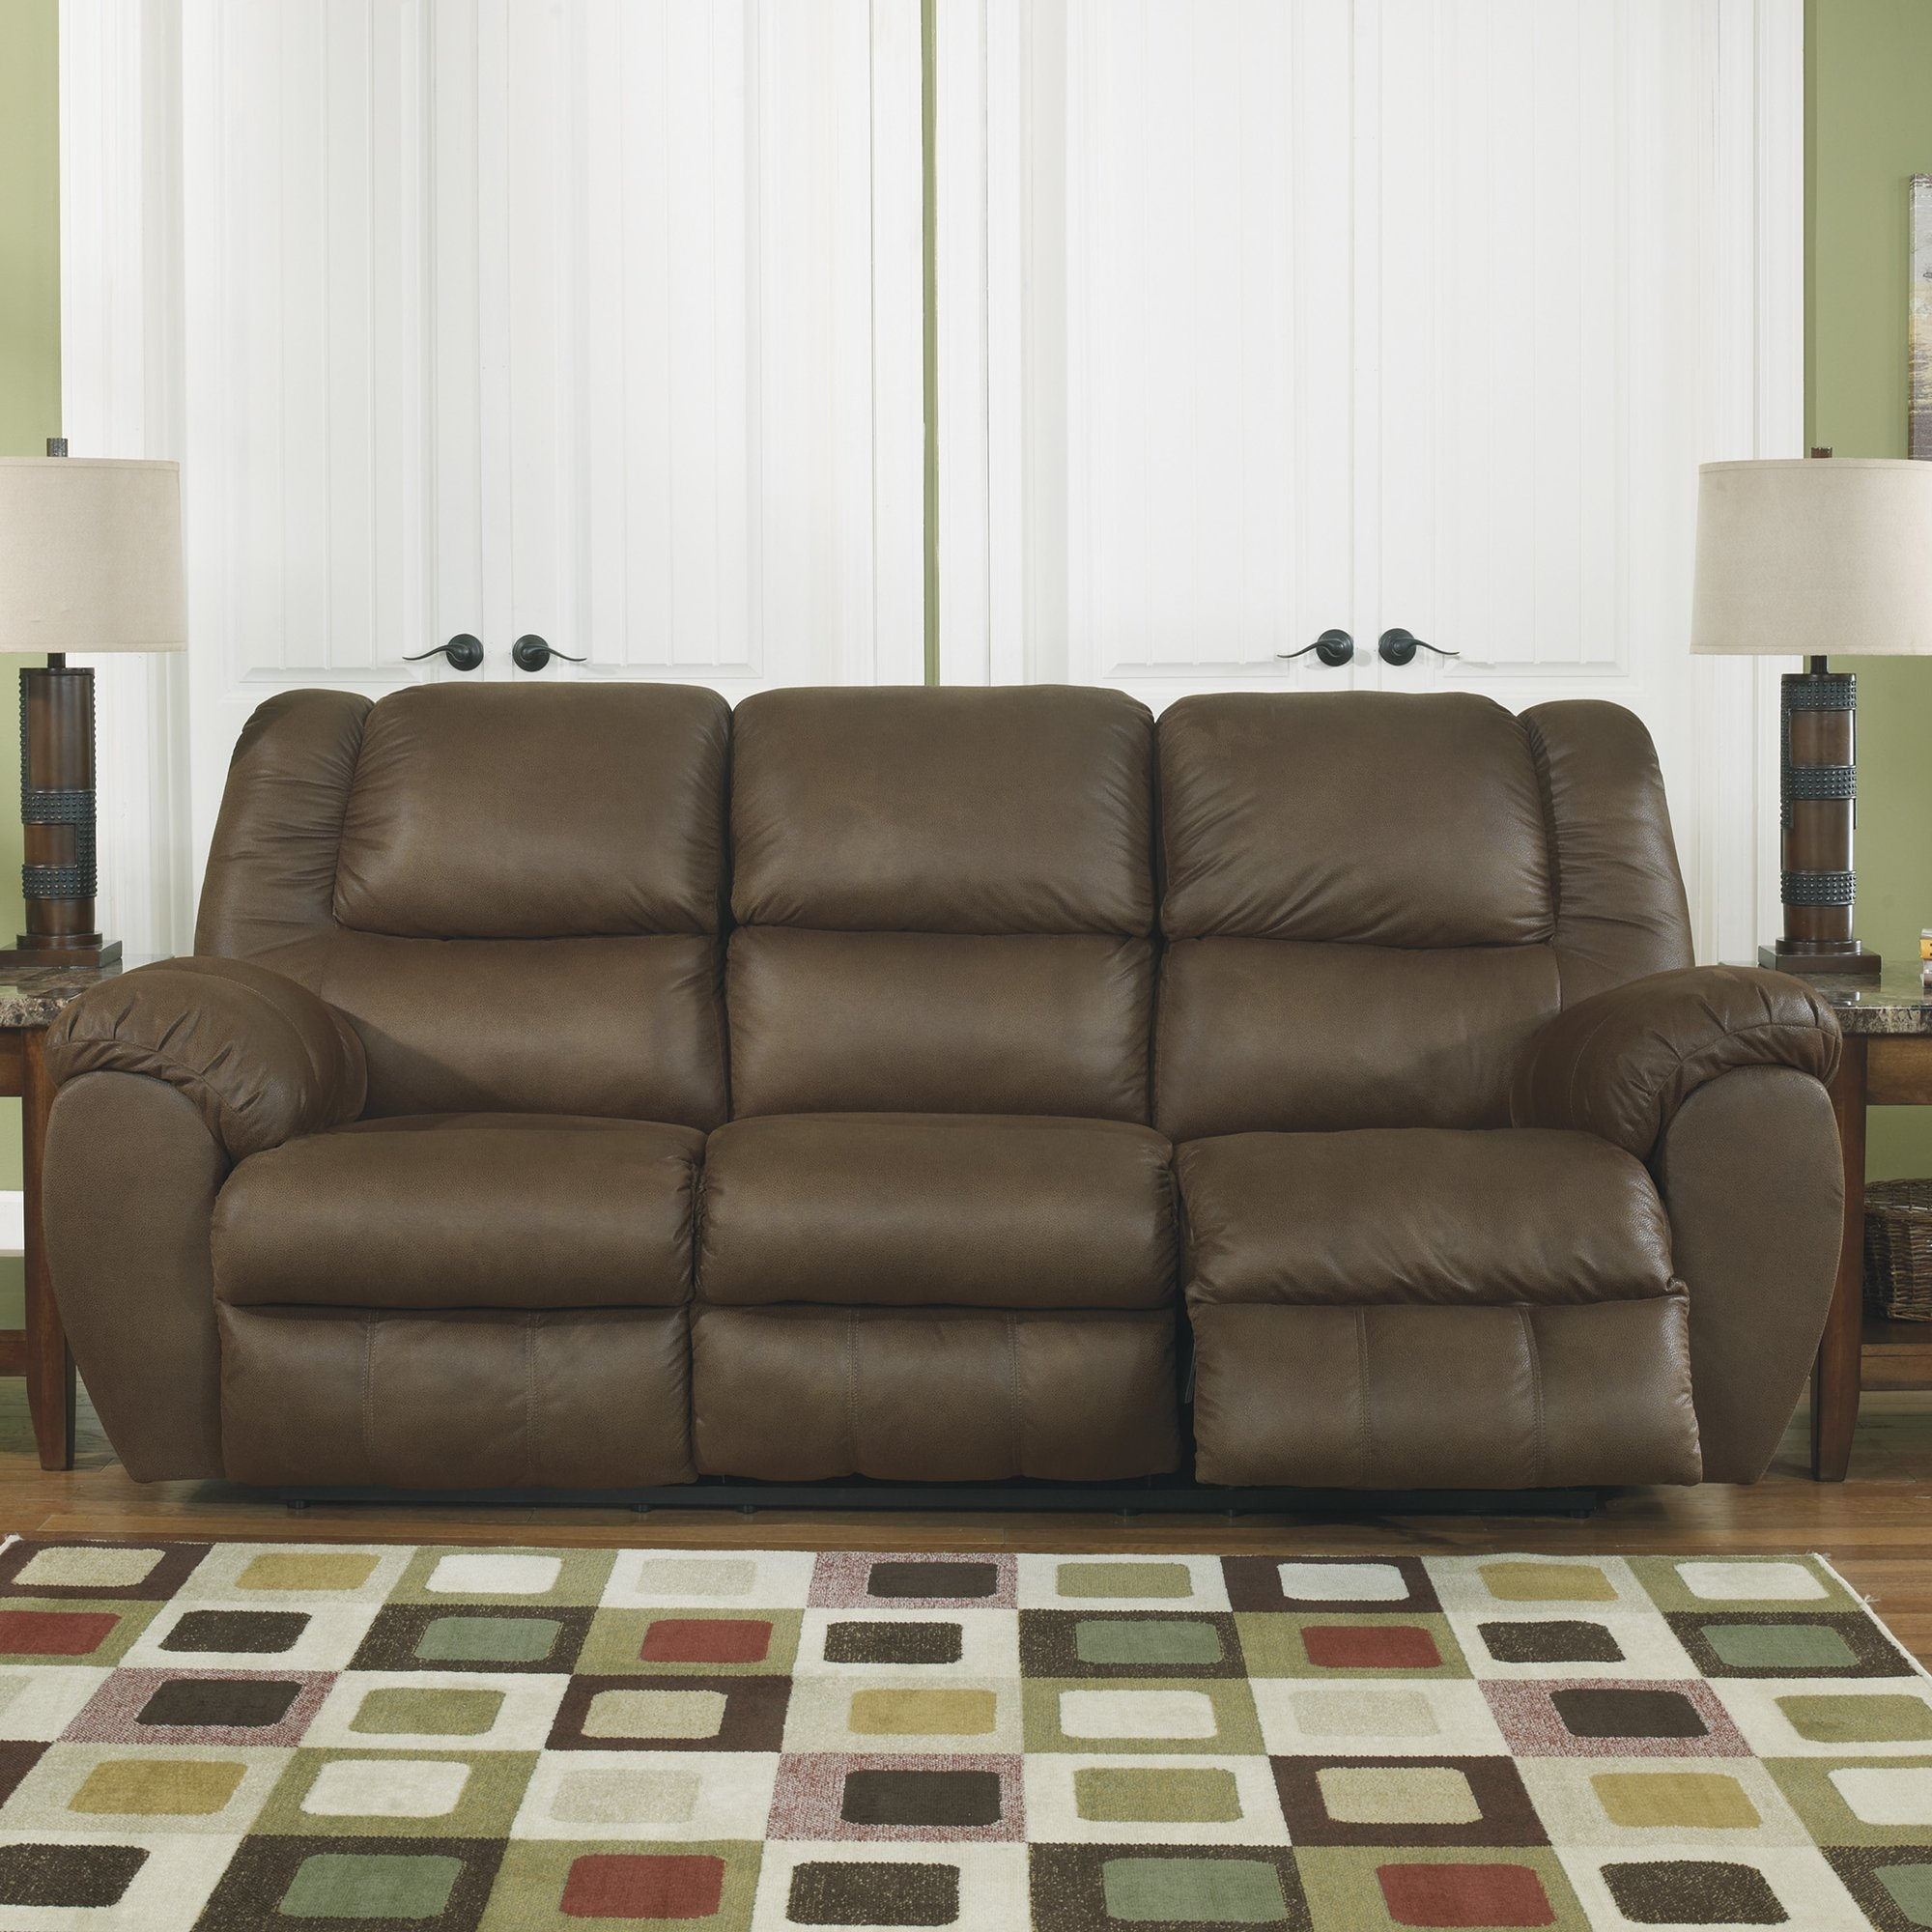 Signature Design Ashley Weatherly Reclining Sofa Reviews Throughout Ashley Tufted Sofa (#12 of 12)